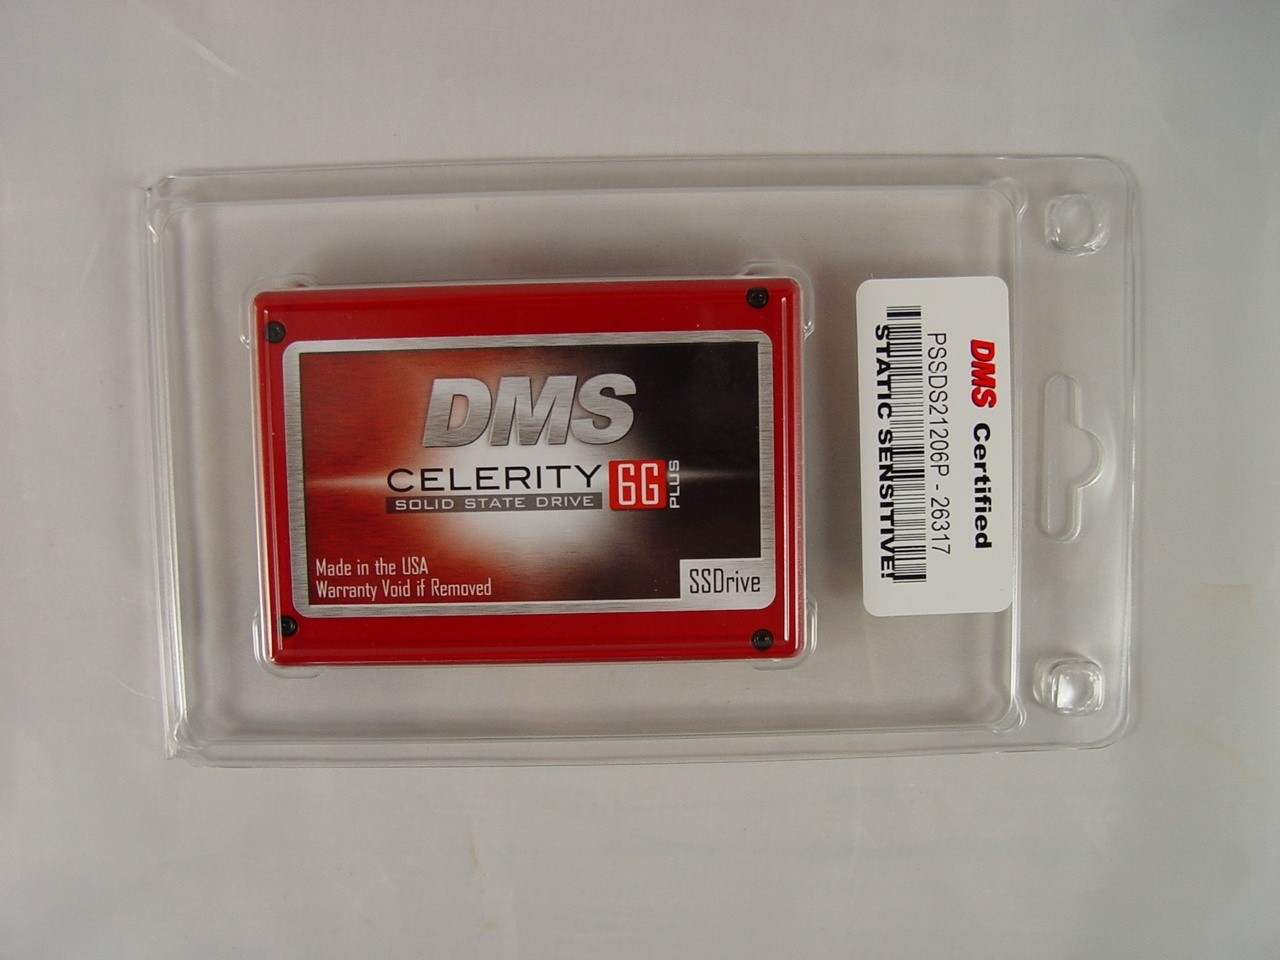 data_memory_systems_celerity_6g_plus_120gb_solid_state_drive_review